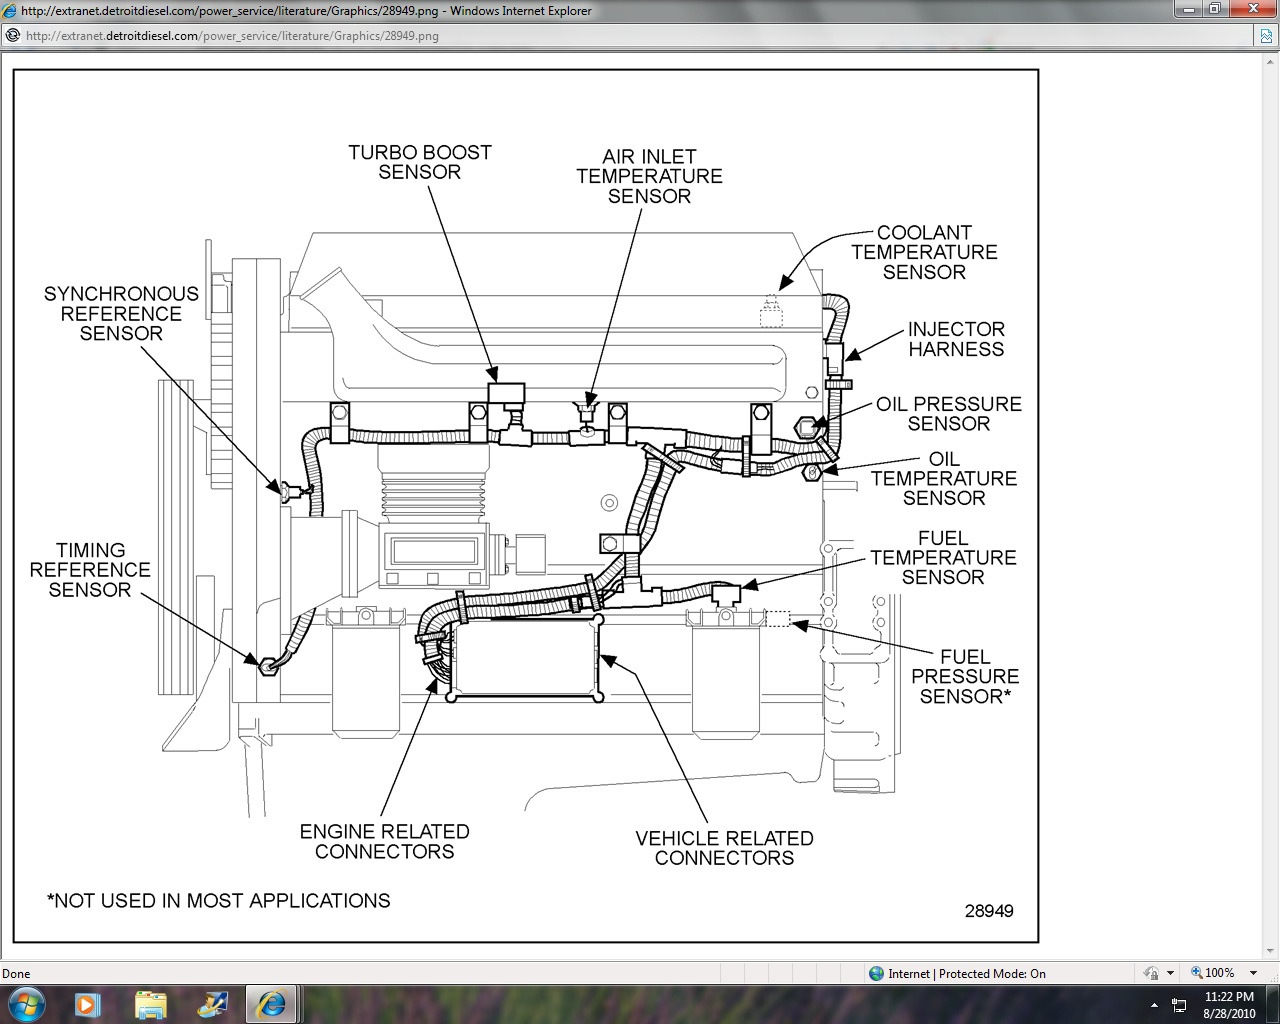 akitarescueoftulsa likewise Buick Nailhead Intake besides 3xlu0 Looking Location Srs Trs Sensors further 3dyk9 What S Tranny Type 2002 Buick Century 4t65e The as well Ford Windstar Oxygen Sensor Location. on engine wiring diagram for 1999 buick century